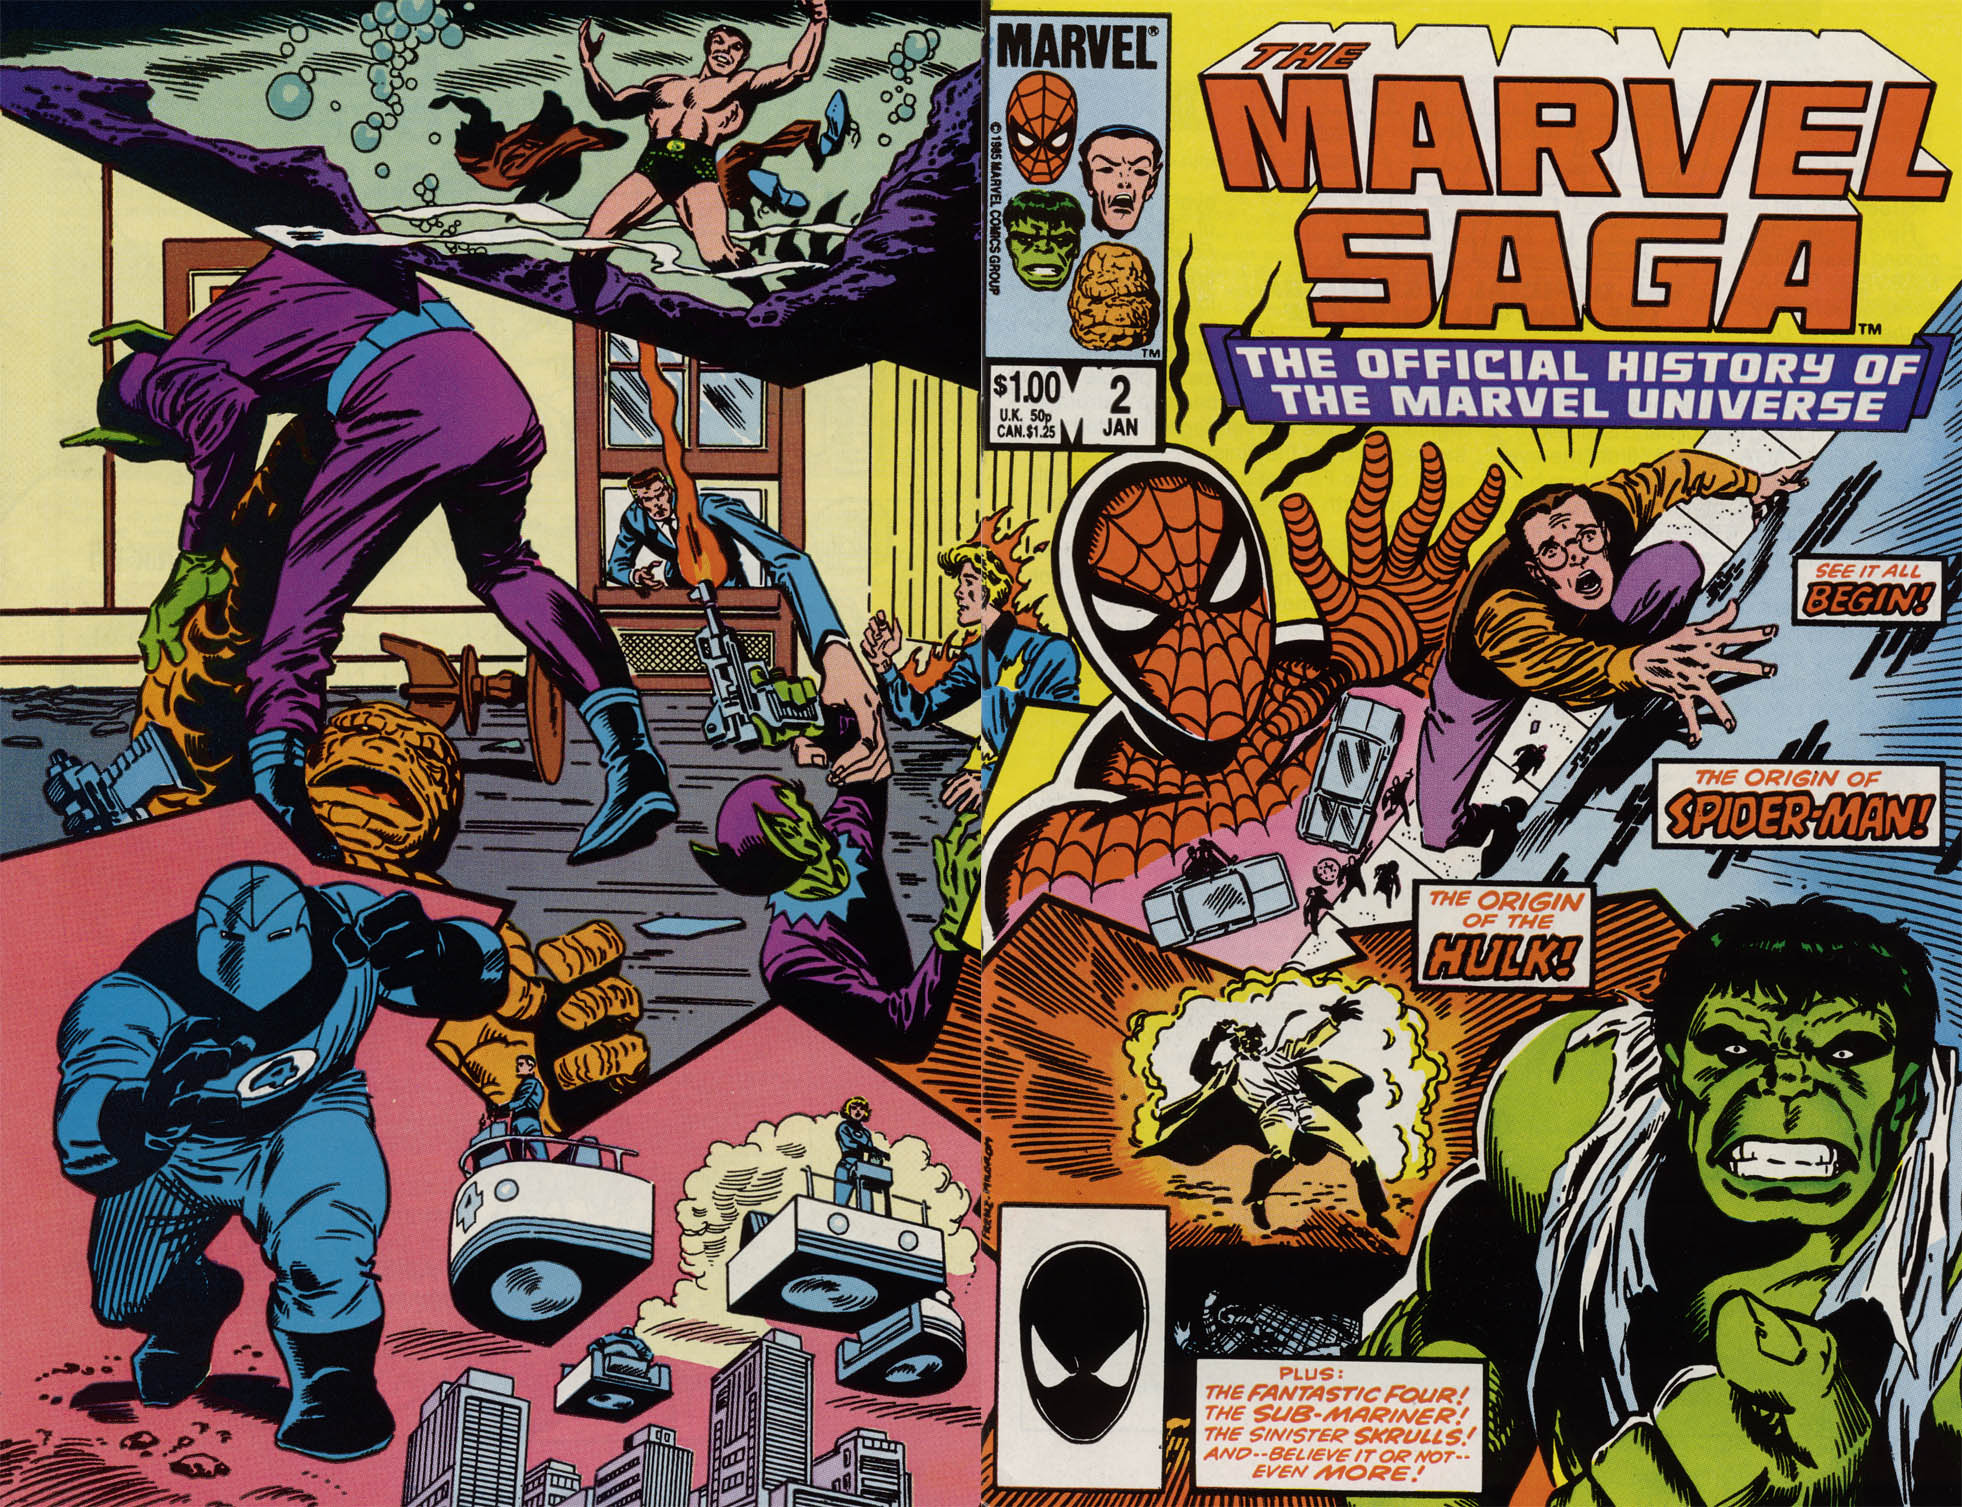 Marvel Saga: The Official History of the Marvel Universe 2 Page 1